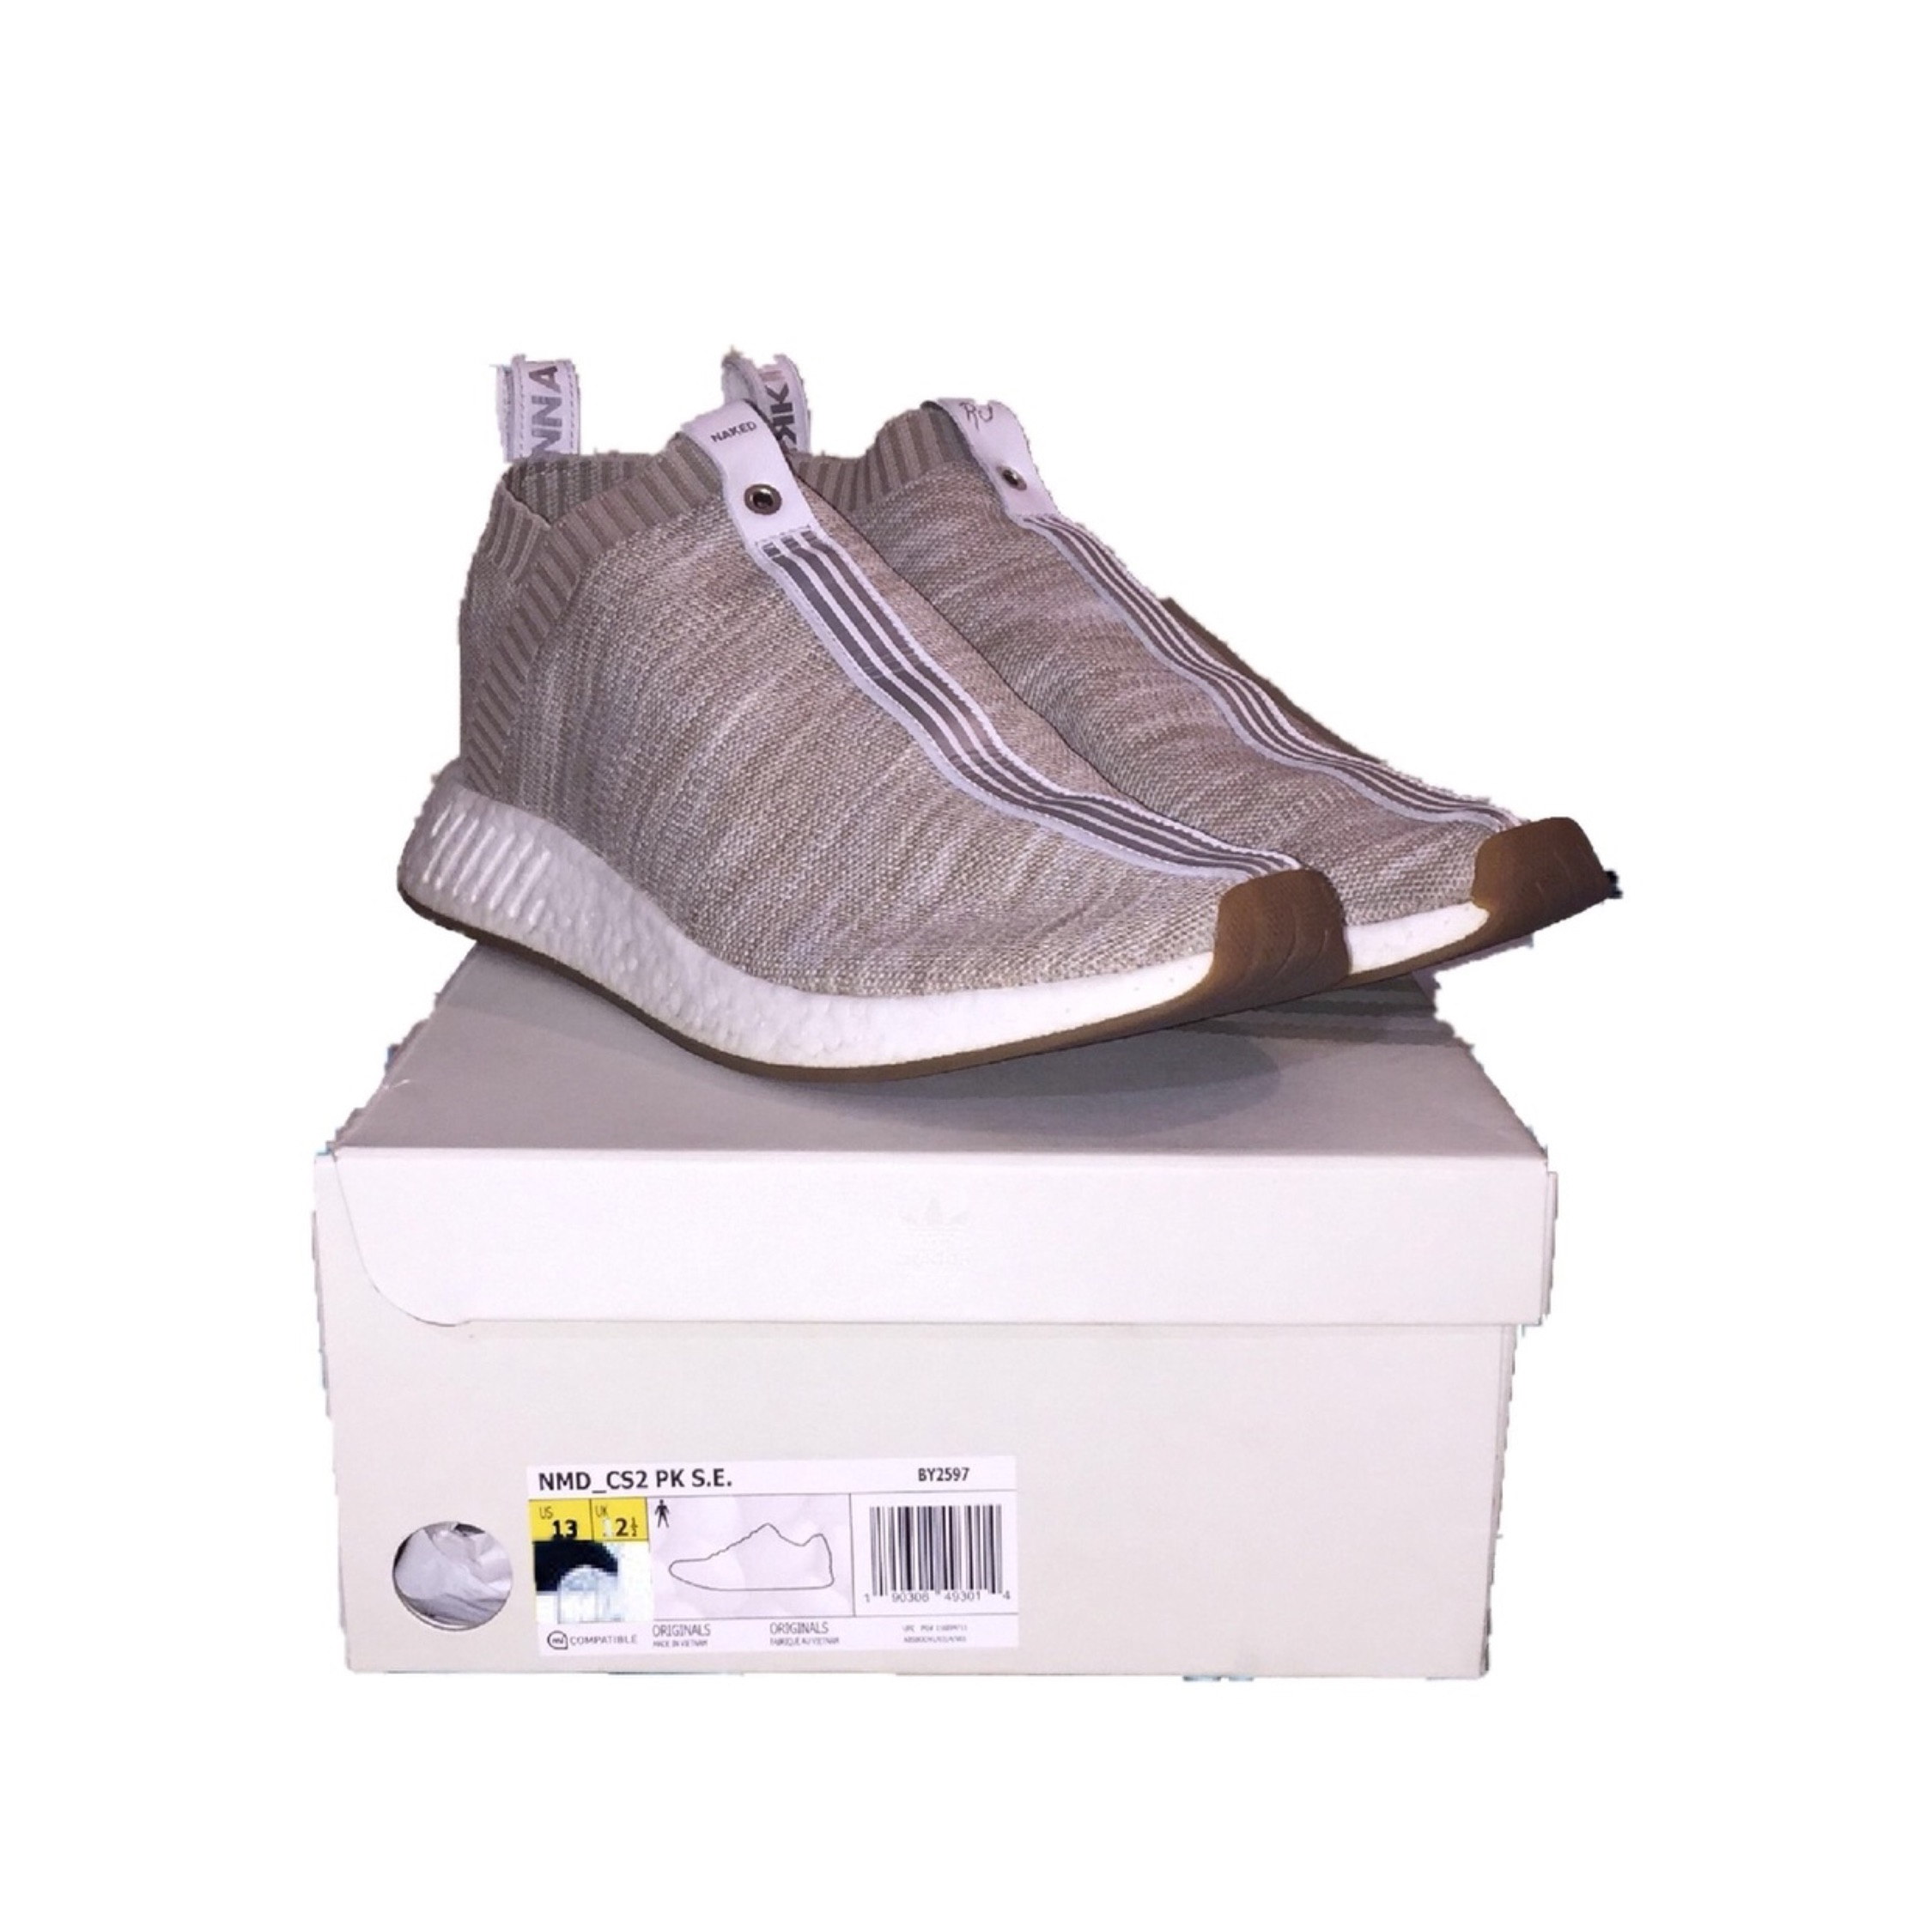 78fb6d40c Kith X Naked X Adidas Nmd  Offers Trades